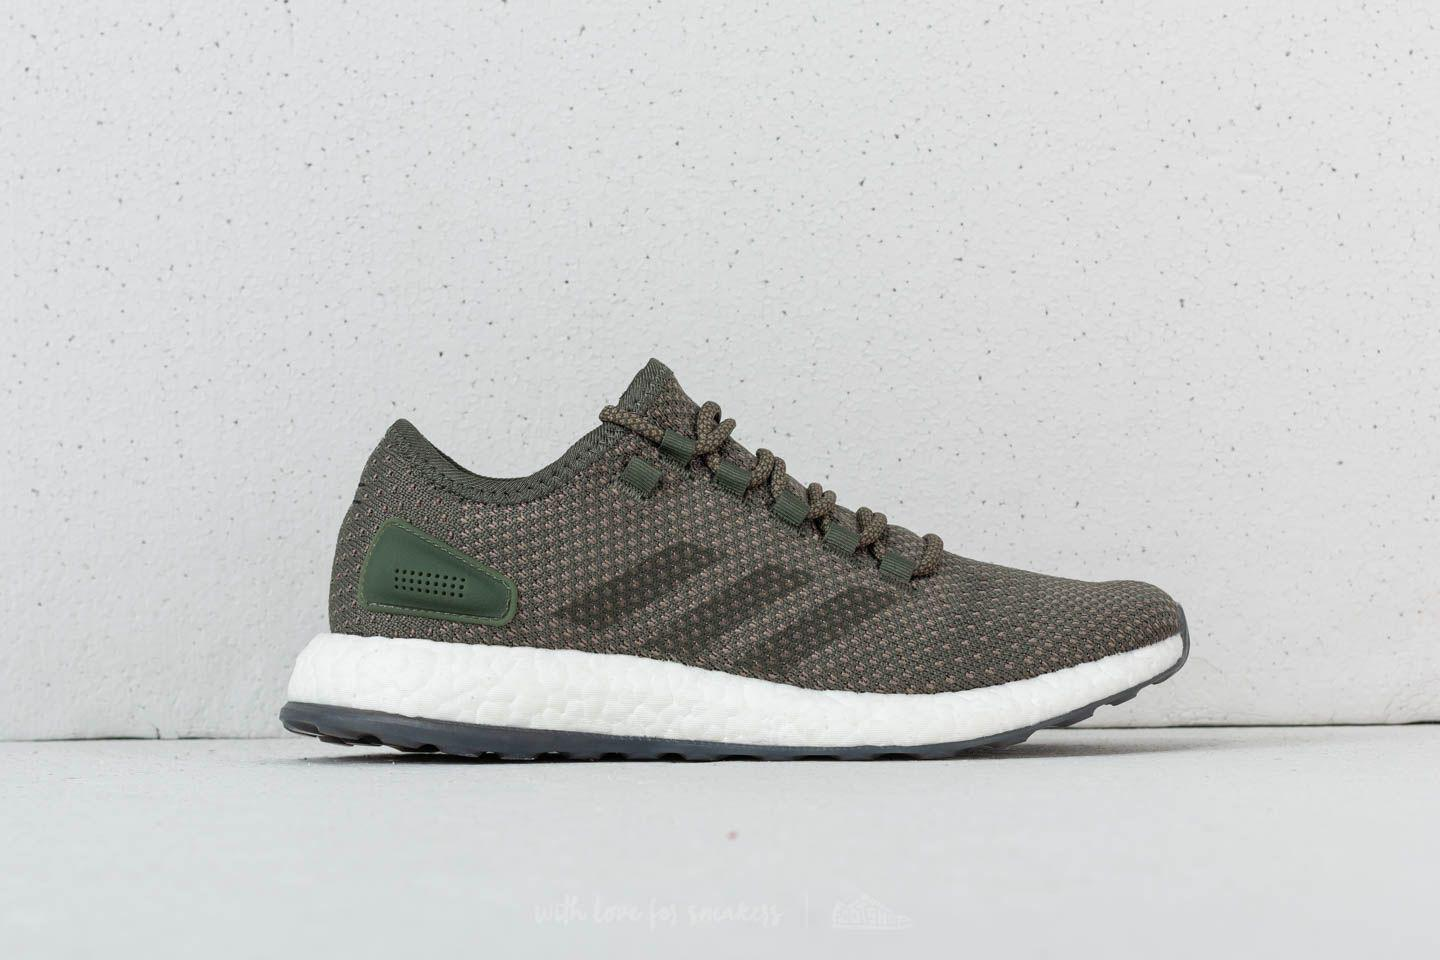 d79ee4beaf0 ... where to buy footshop adidas pureboost clima base green night cargo  trace cargo for men .